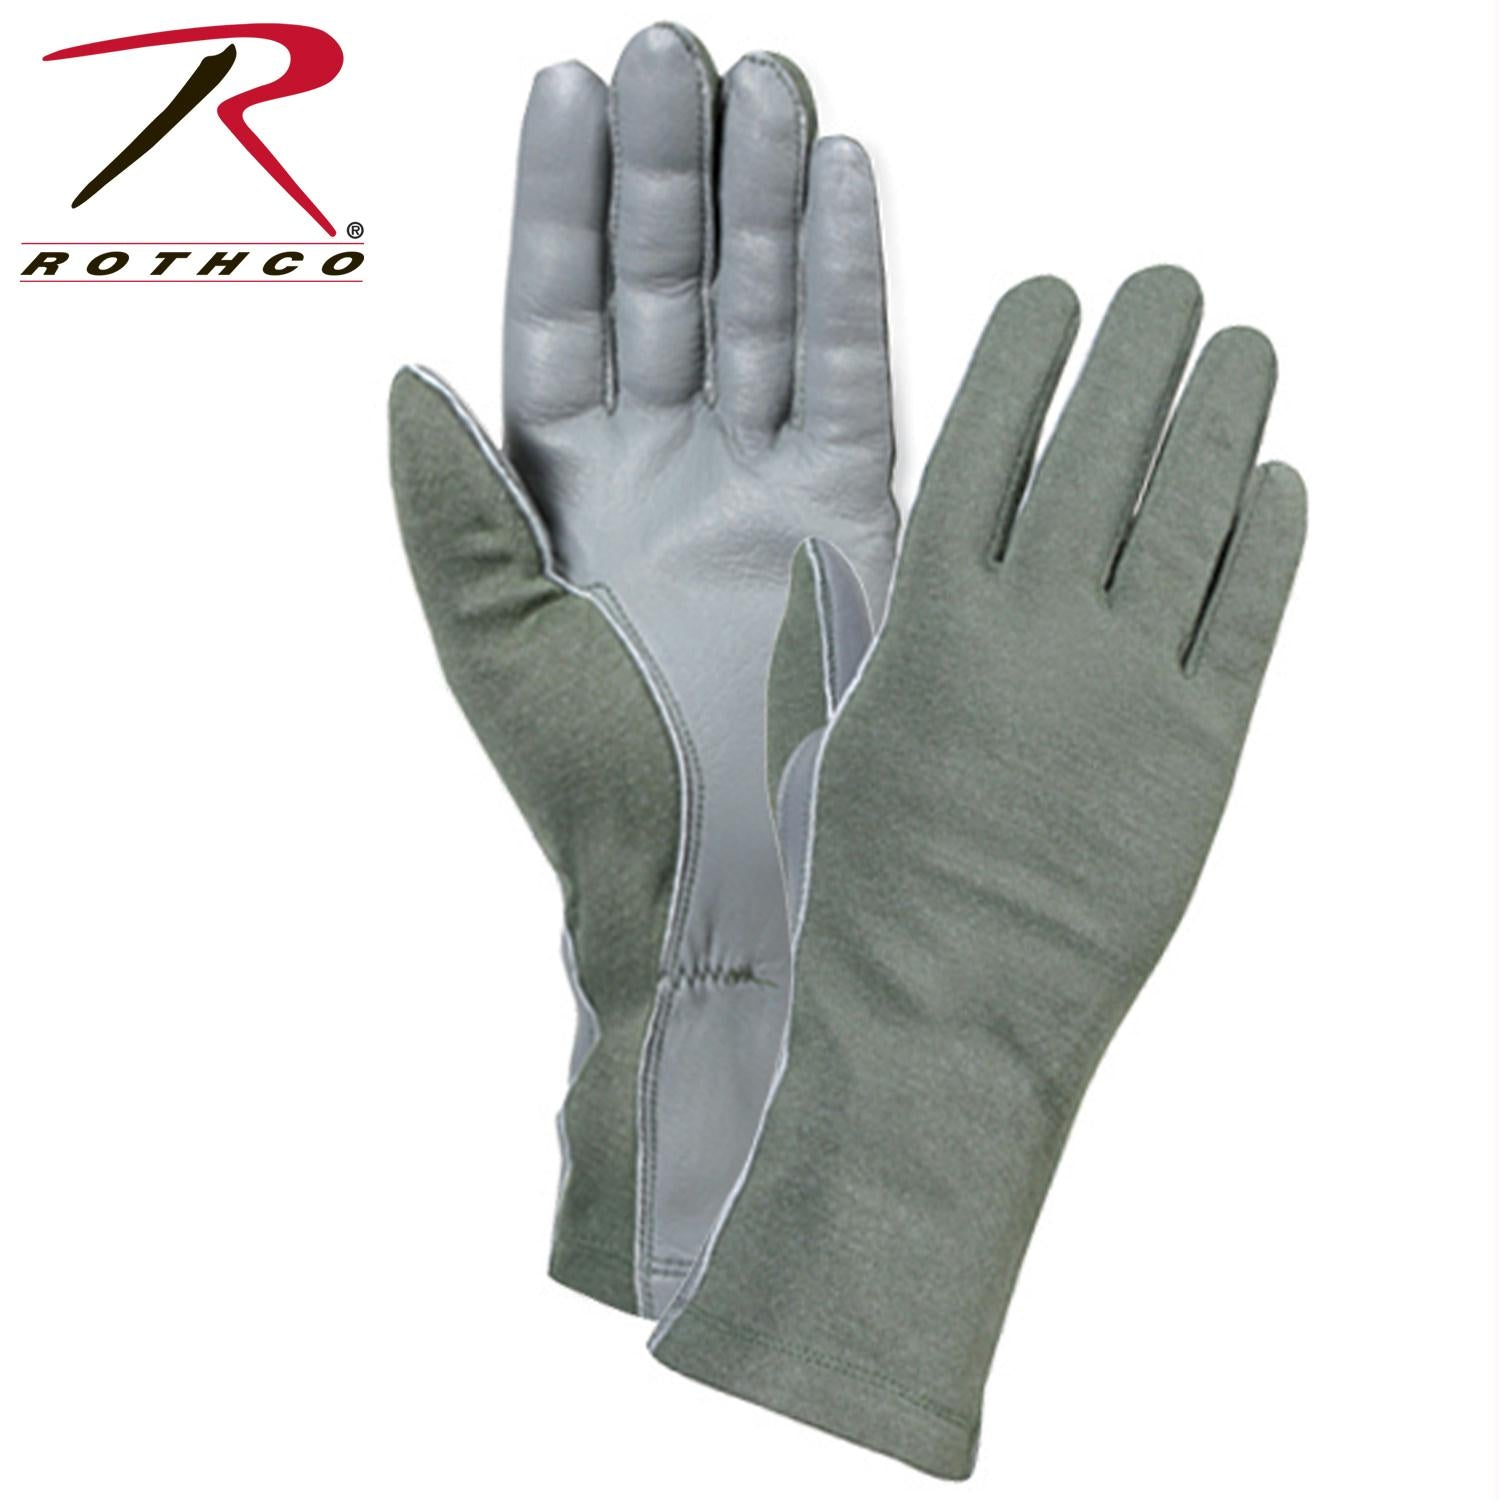 Rothco G.I. Type Flame & Heat Resistant Flight Gloves - Olive Drab / 11